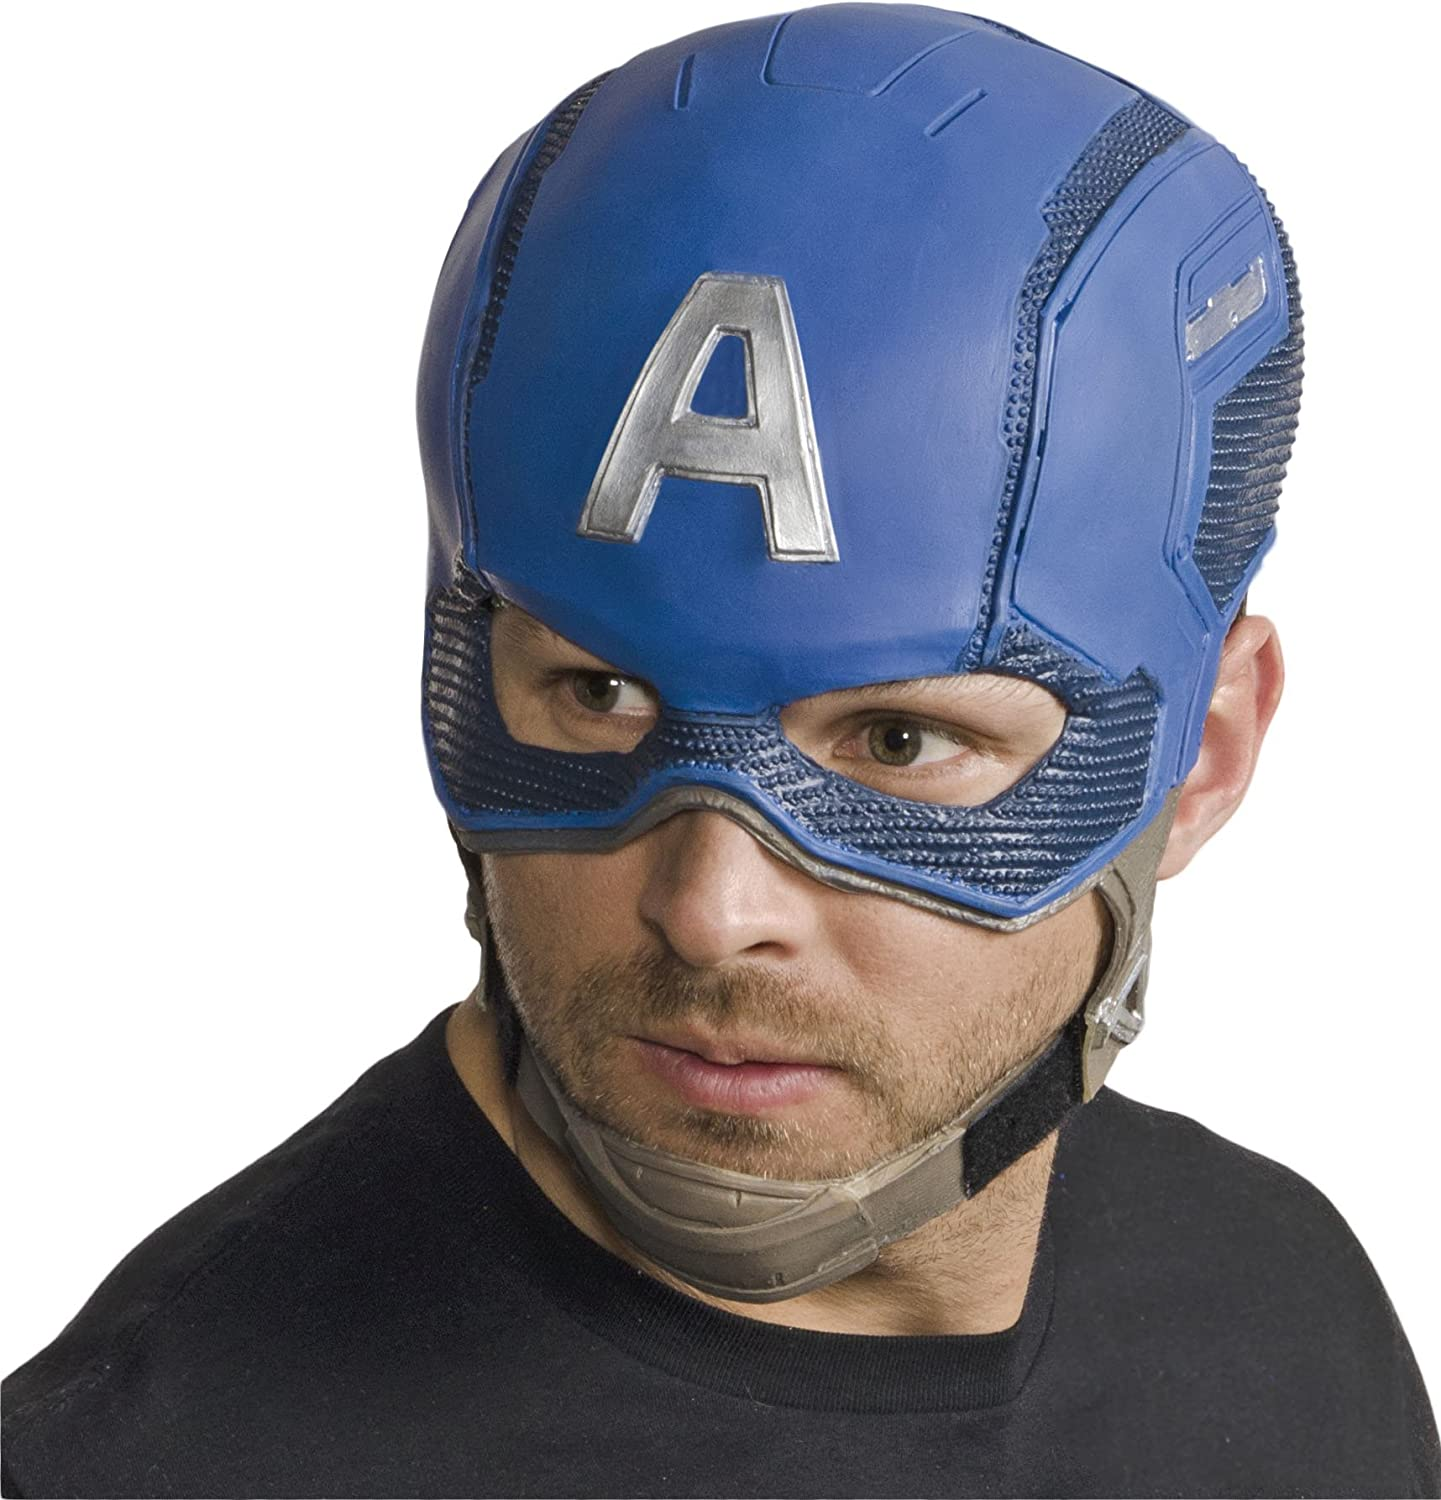 The Avengers Age of Ultron Captain America Adult Latex Mask